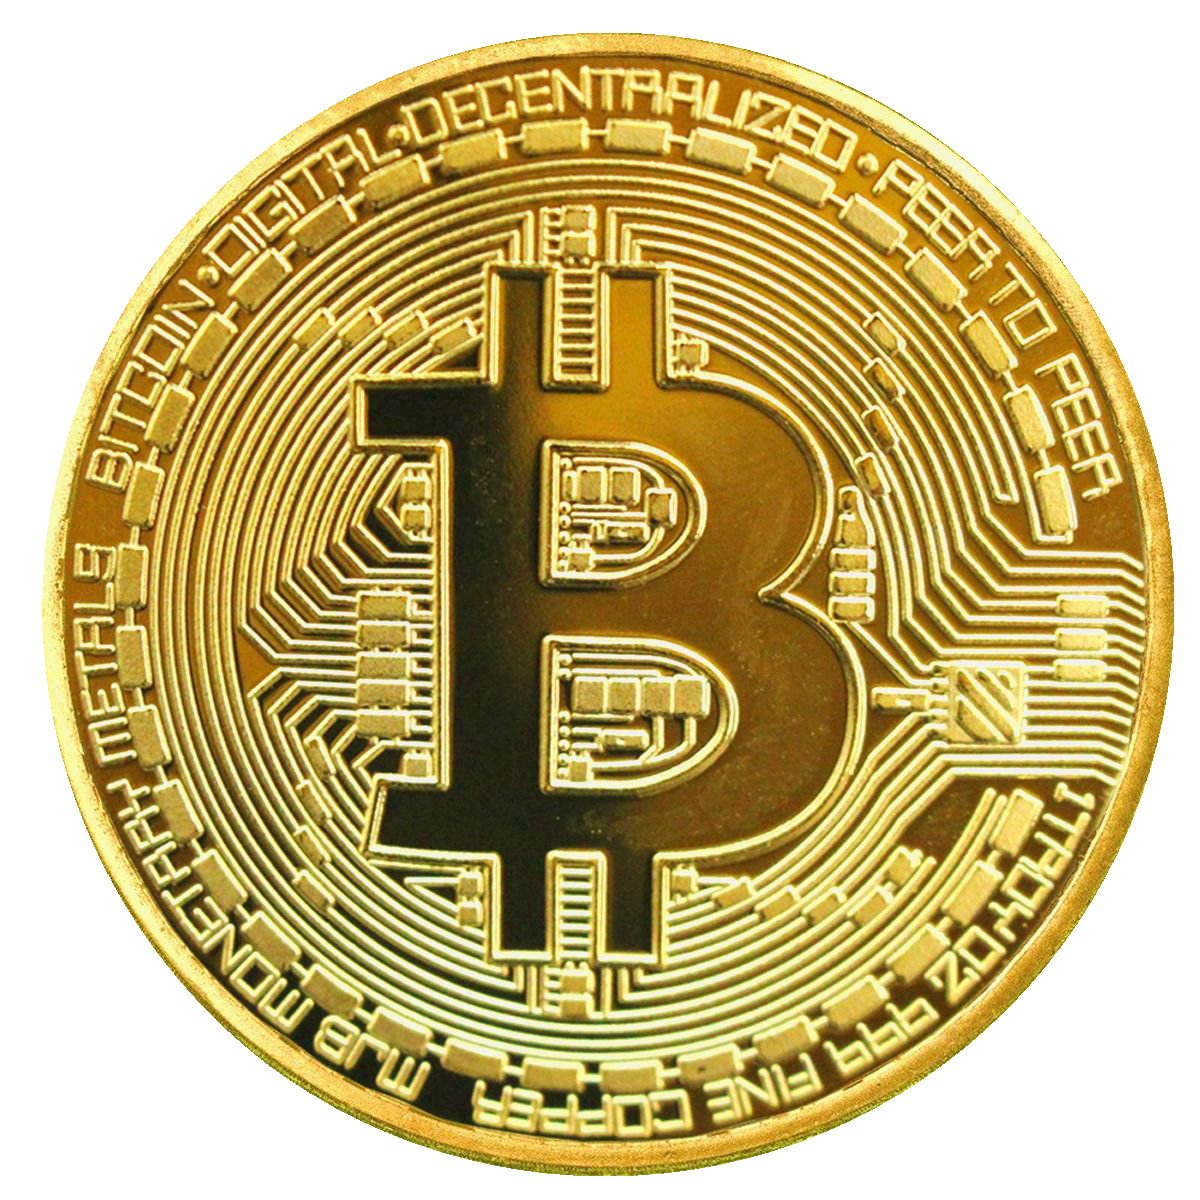 BAQI Gold Plated Bitcoin Coin Collectible Gift BTC Coin Art Collection  Physical- Buy Online in Israel at Desertcart